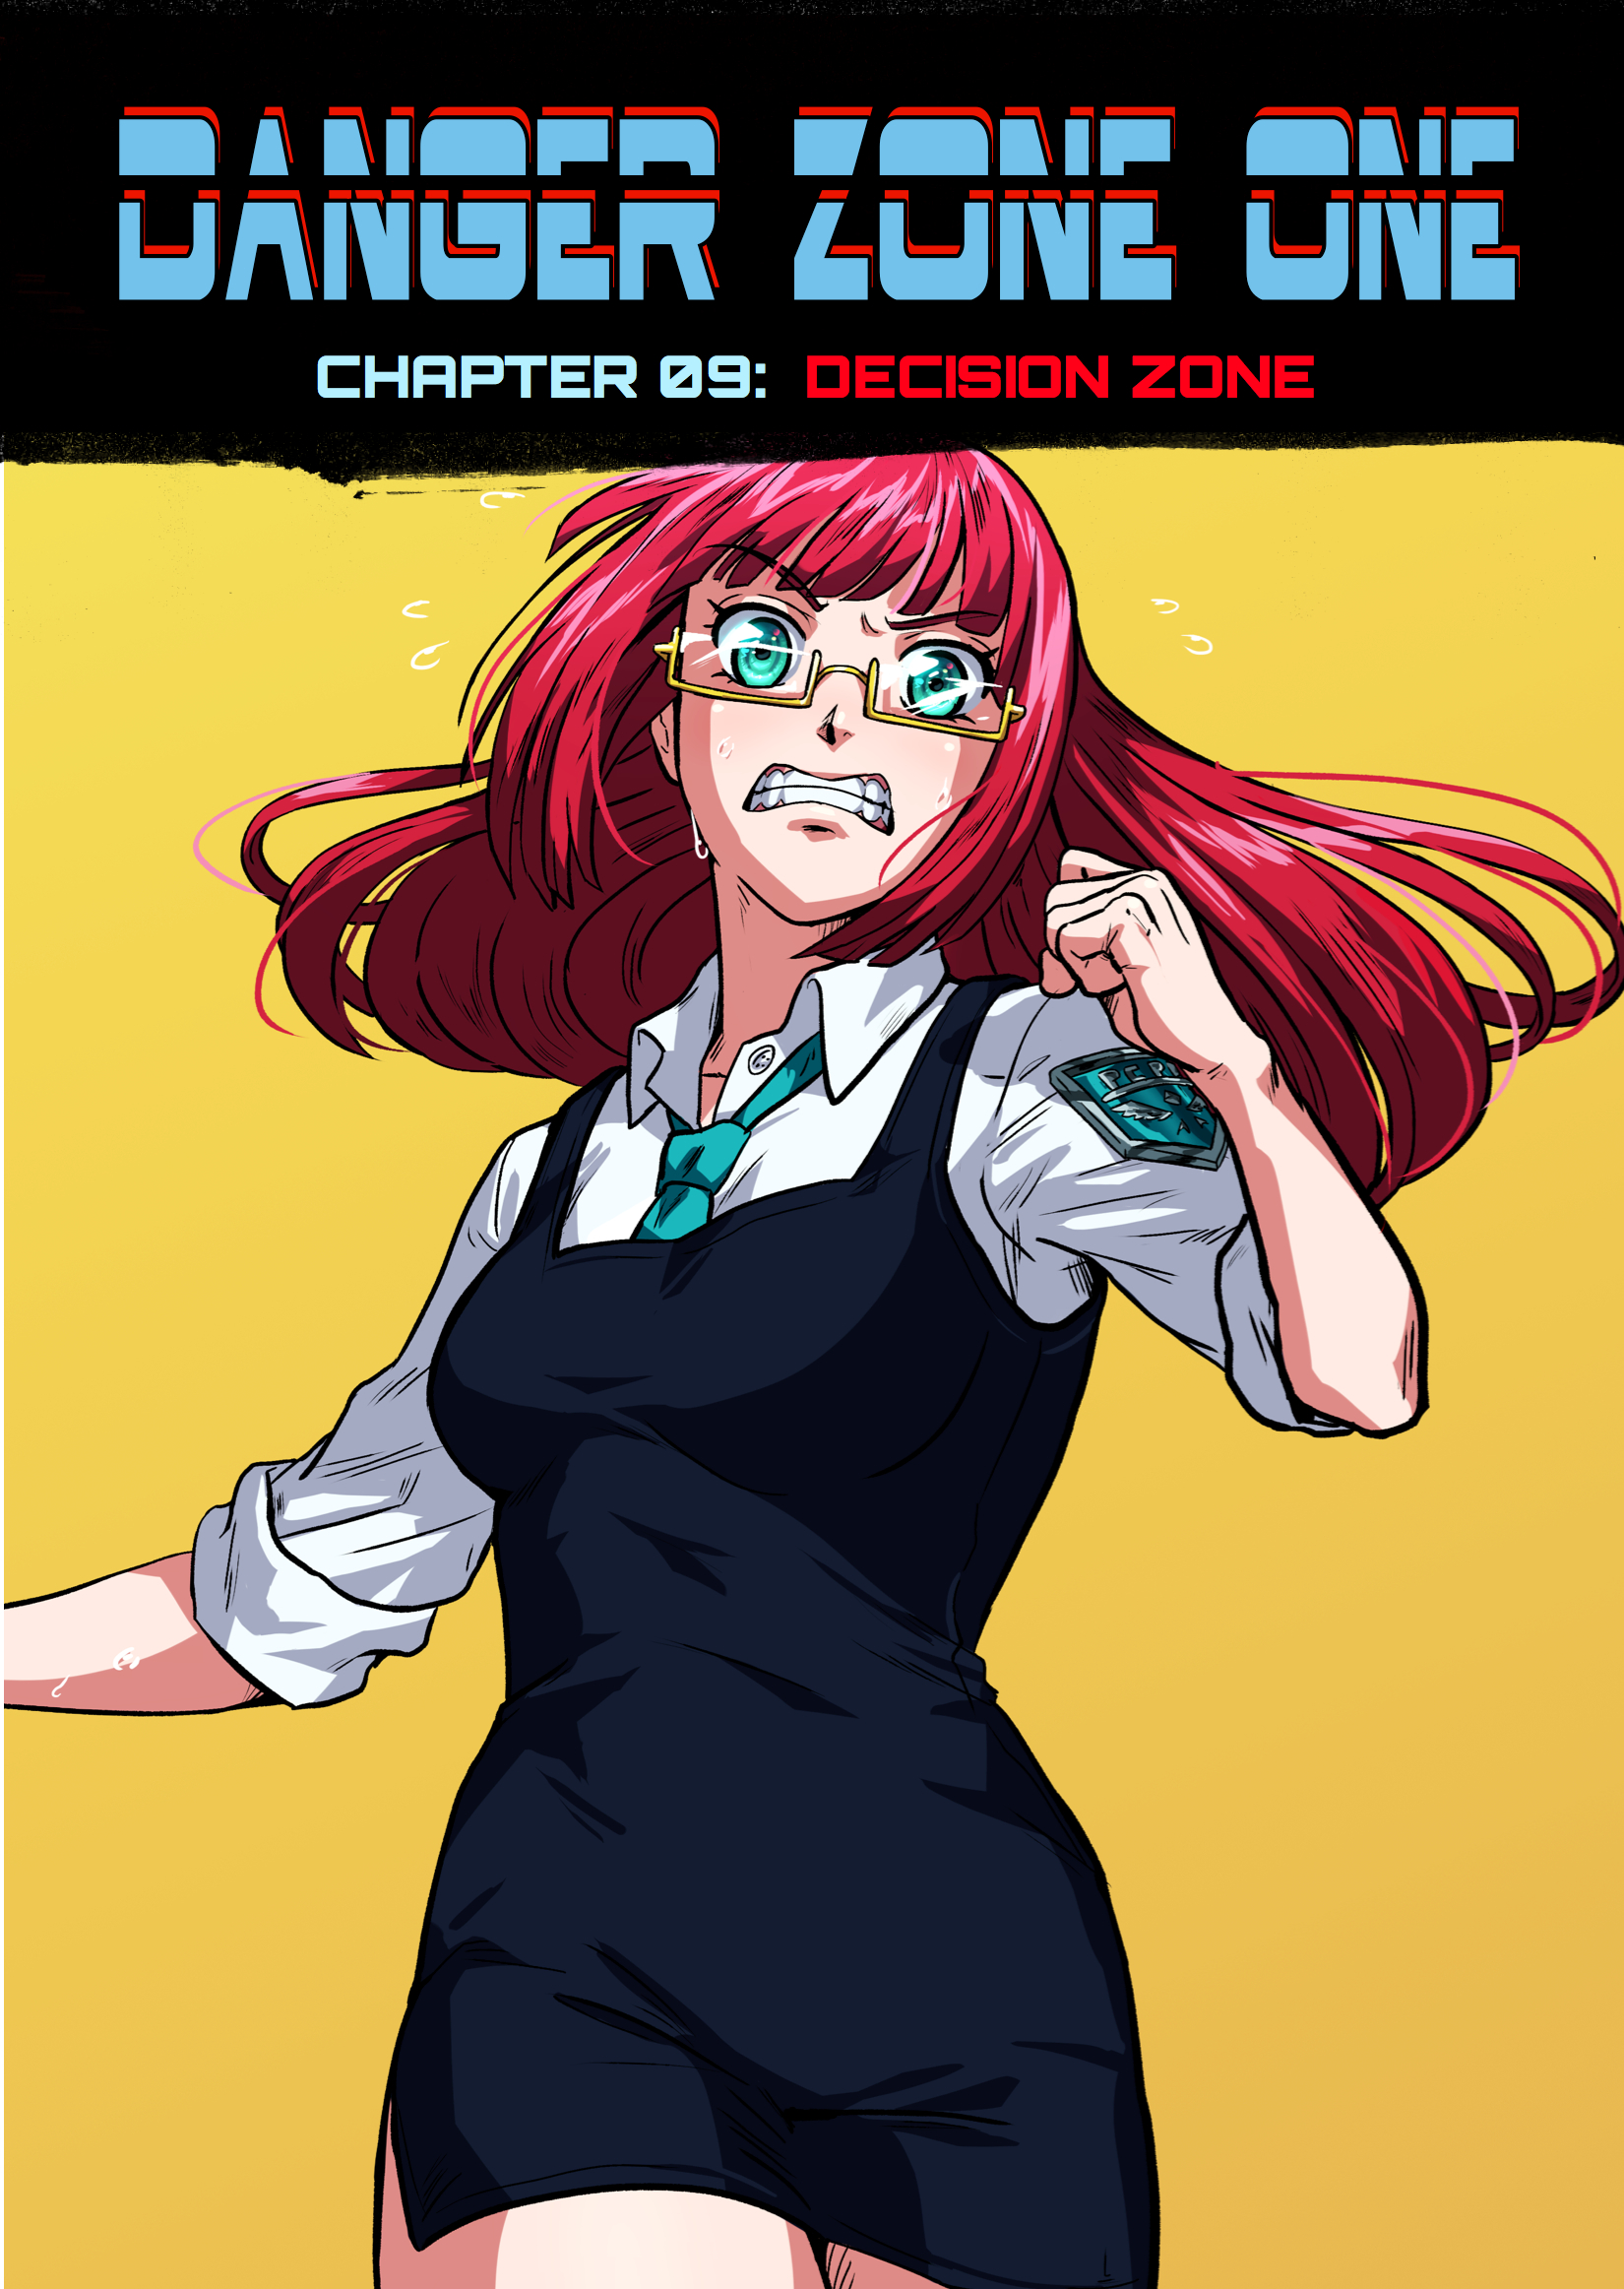 Danger Zone One Chapter 9